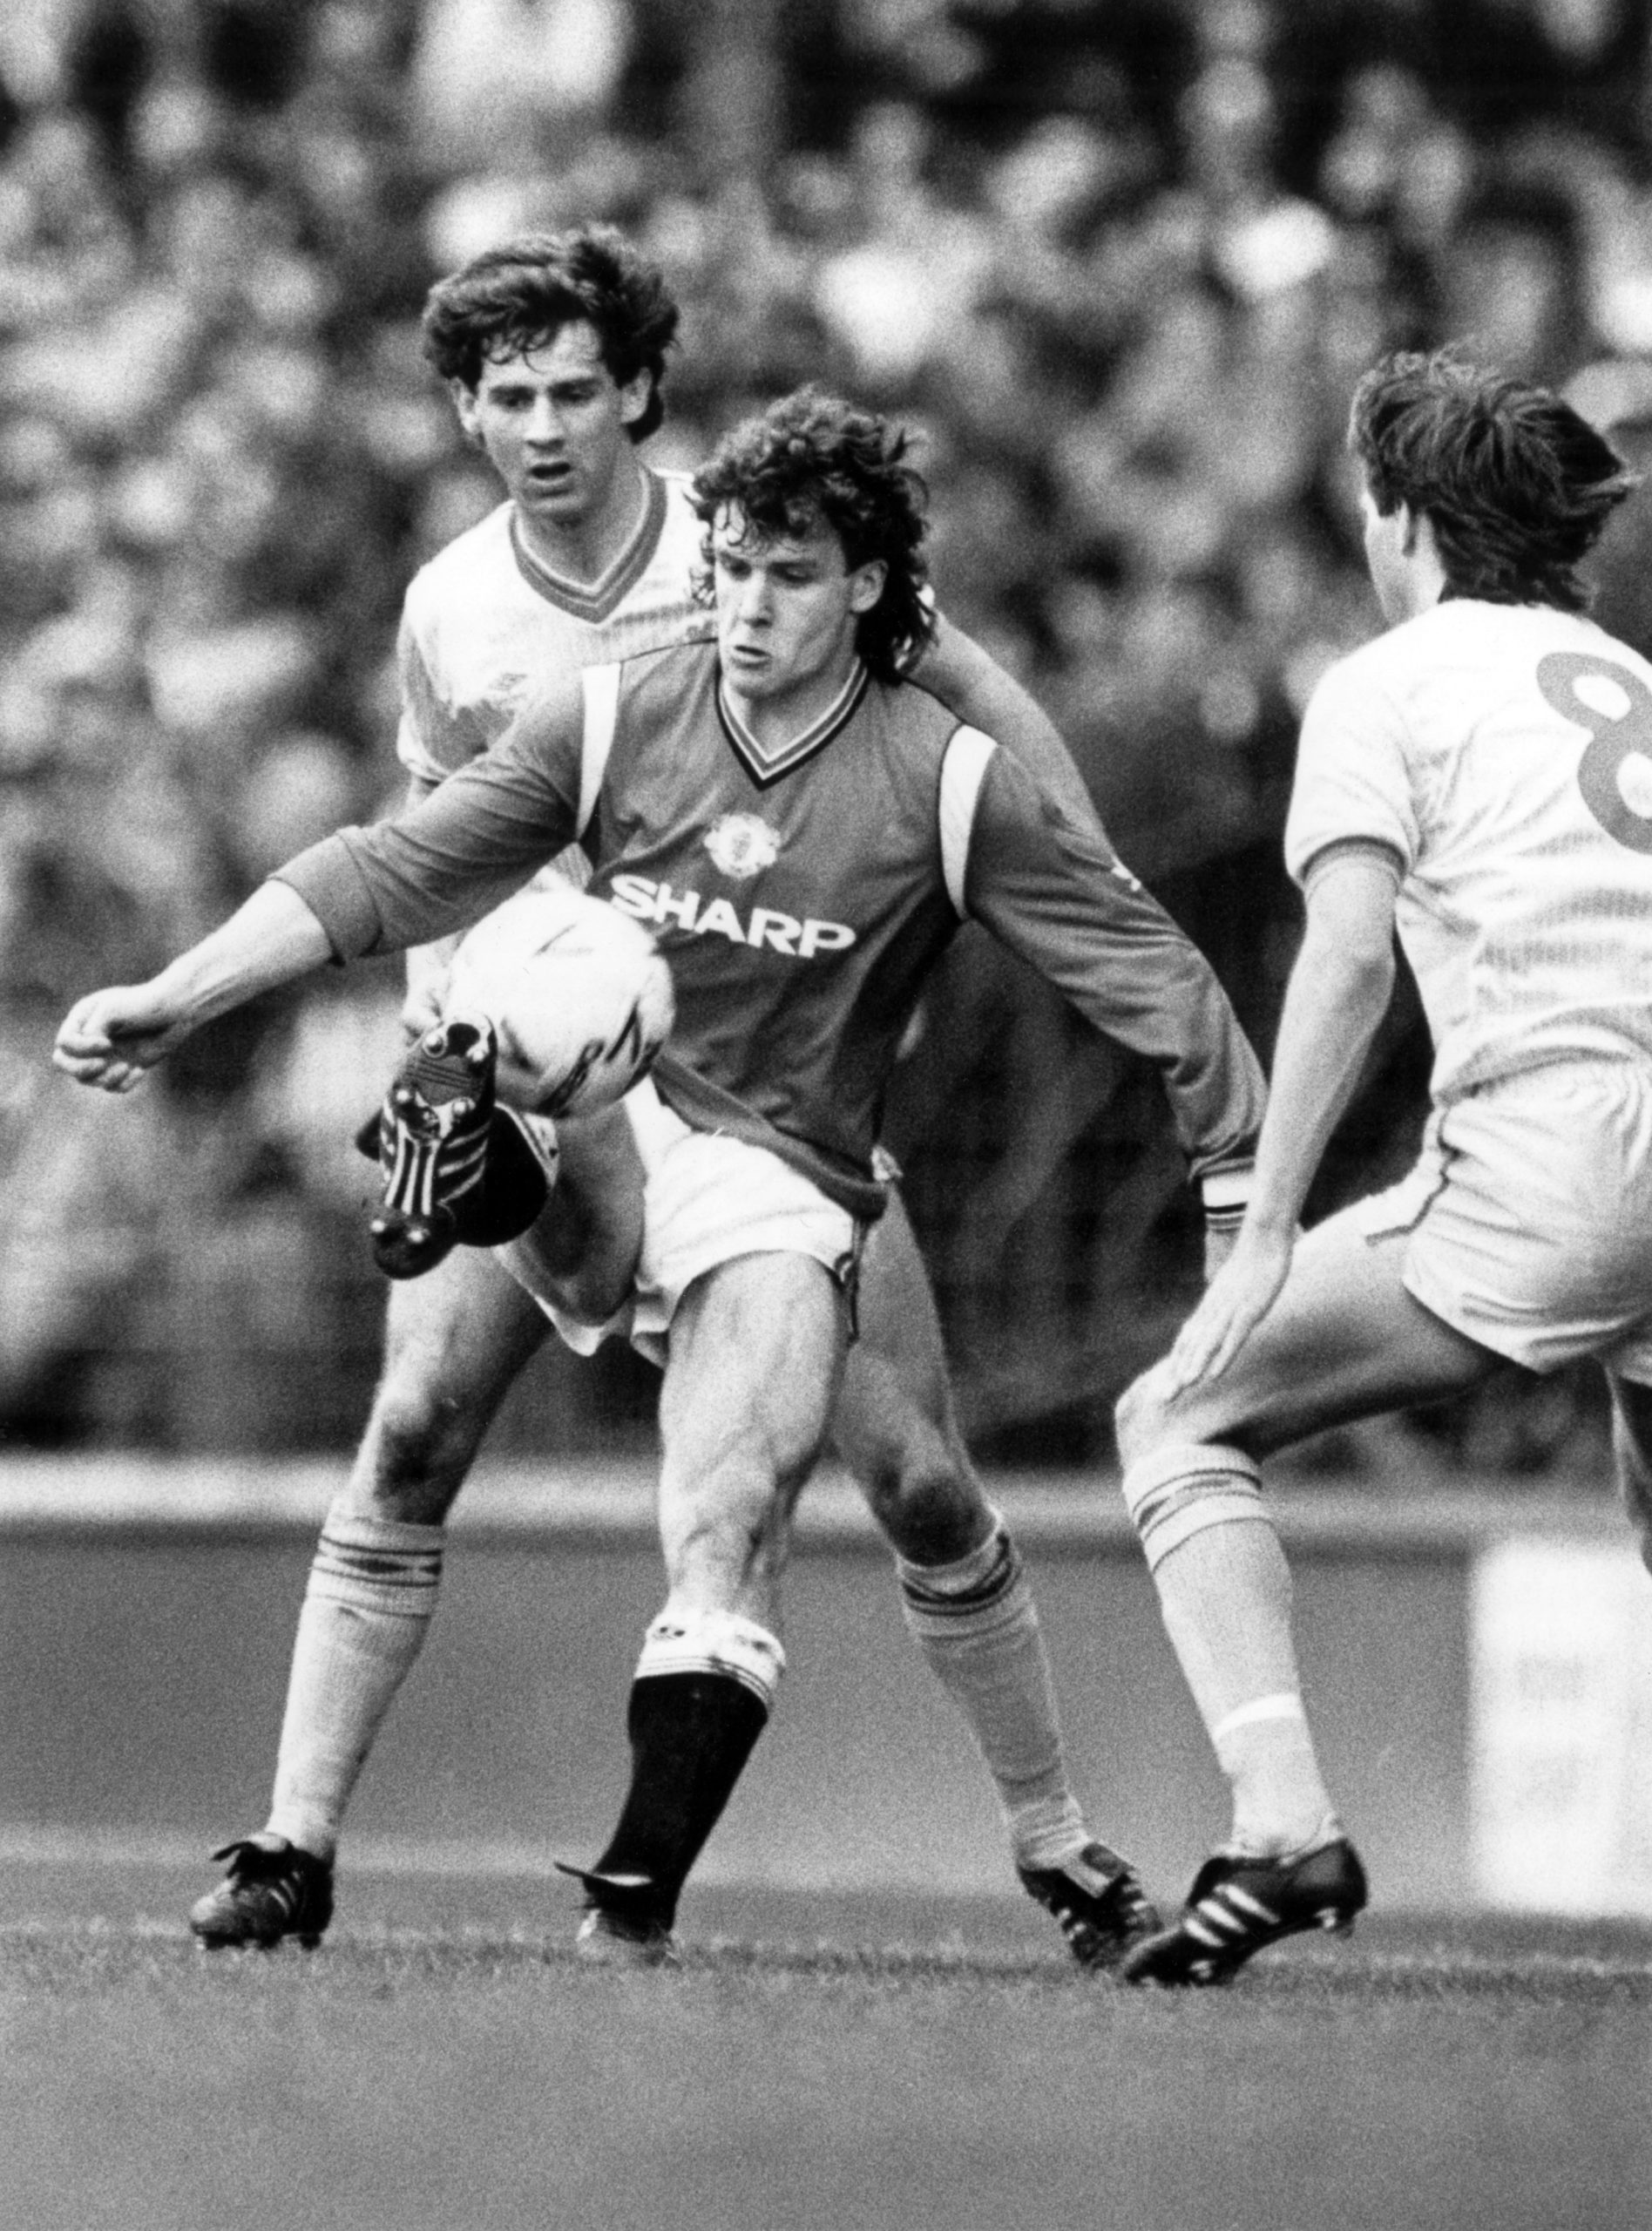 1985: Mark Hughes at Goodison Park in a tense FA Cup Semi Final – Pictured